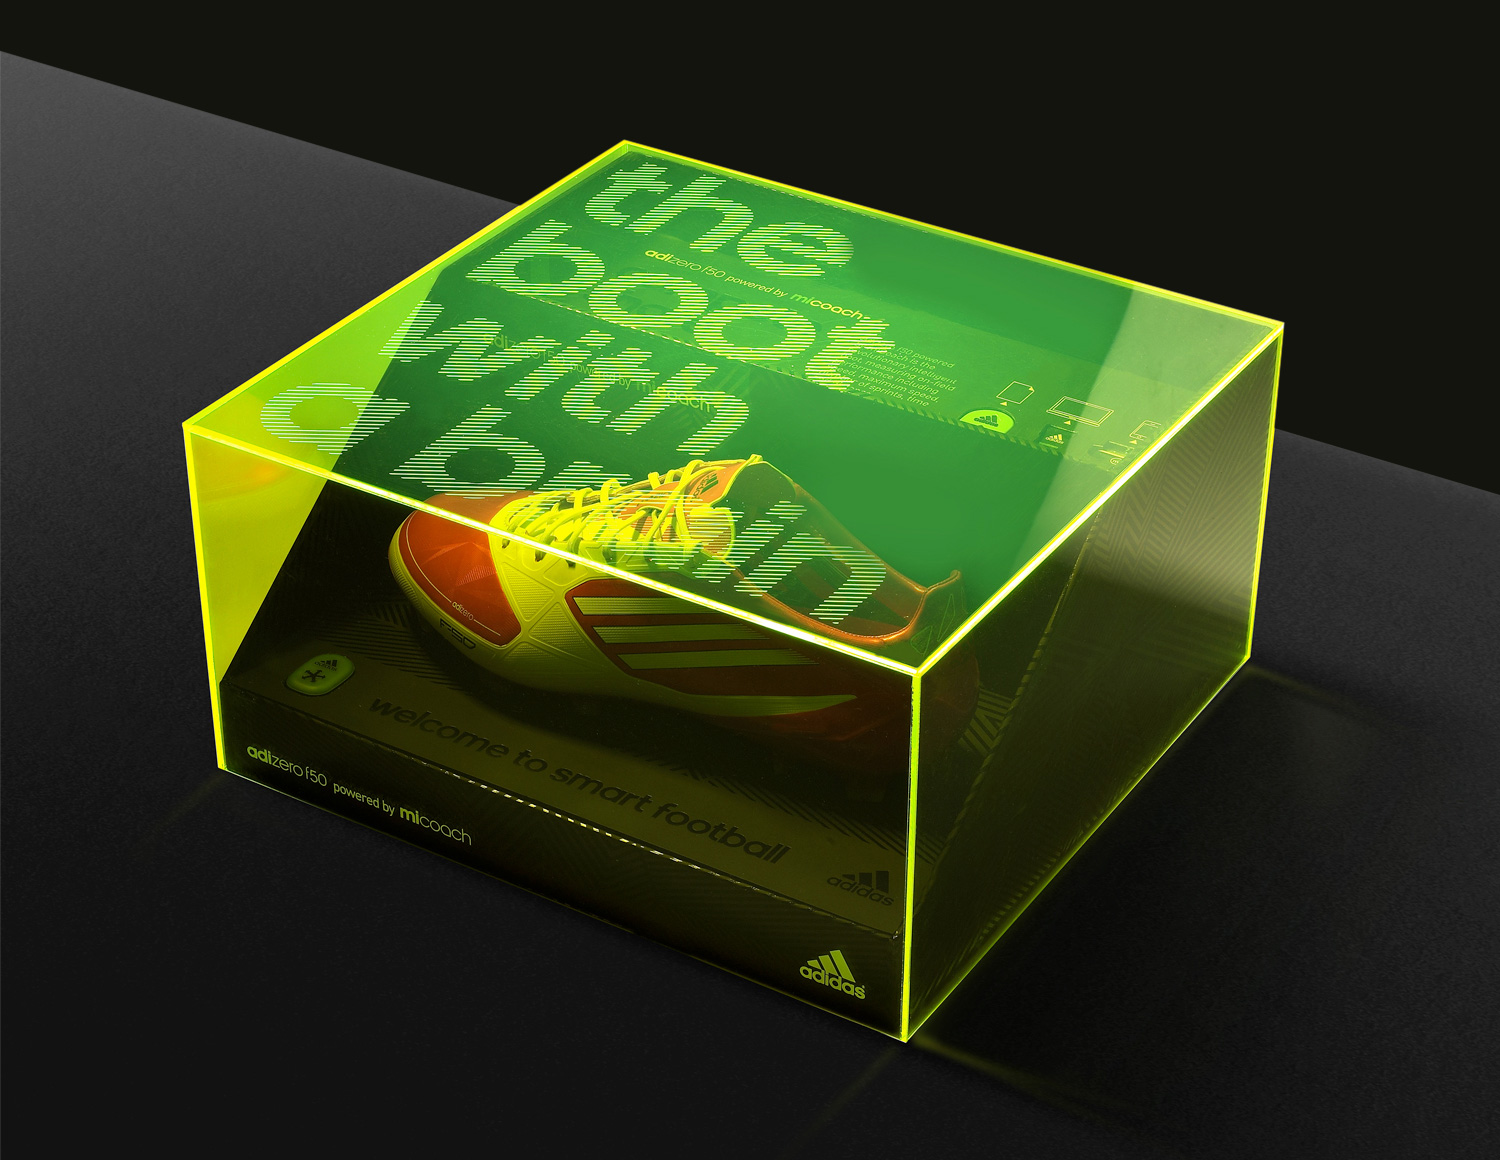 8cbcd338ecd Progress Packaging Adidas Retail Fashion Boxes Acrylic LaserEtched  Promotion FMCG